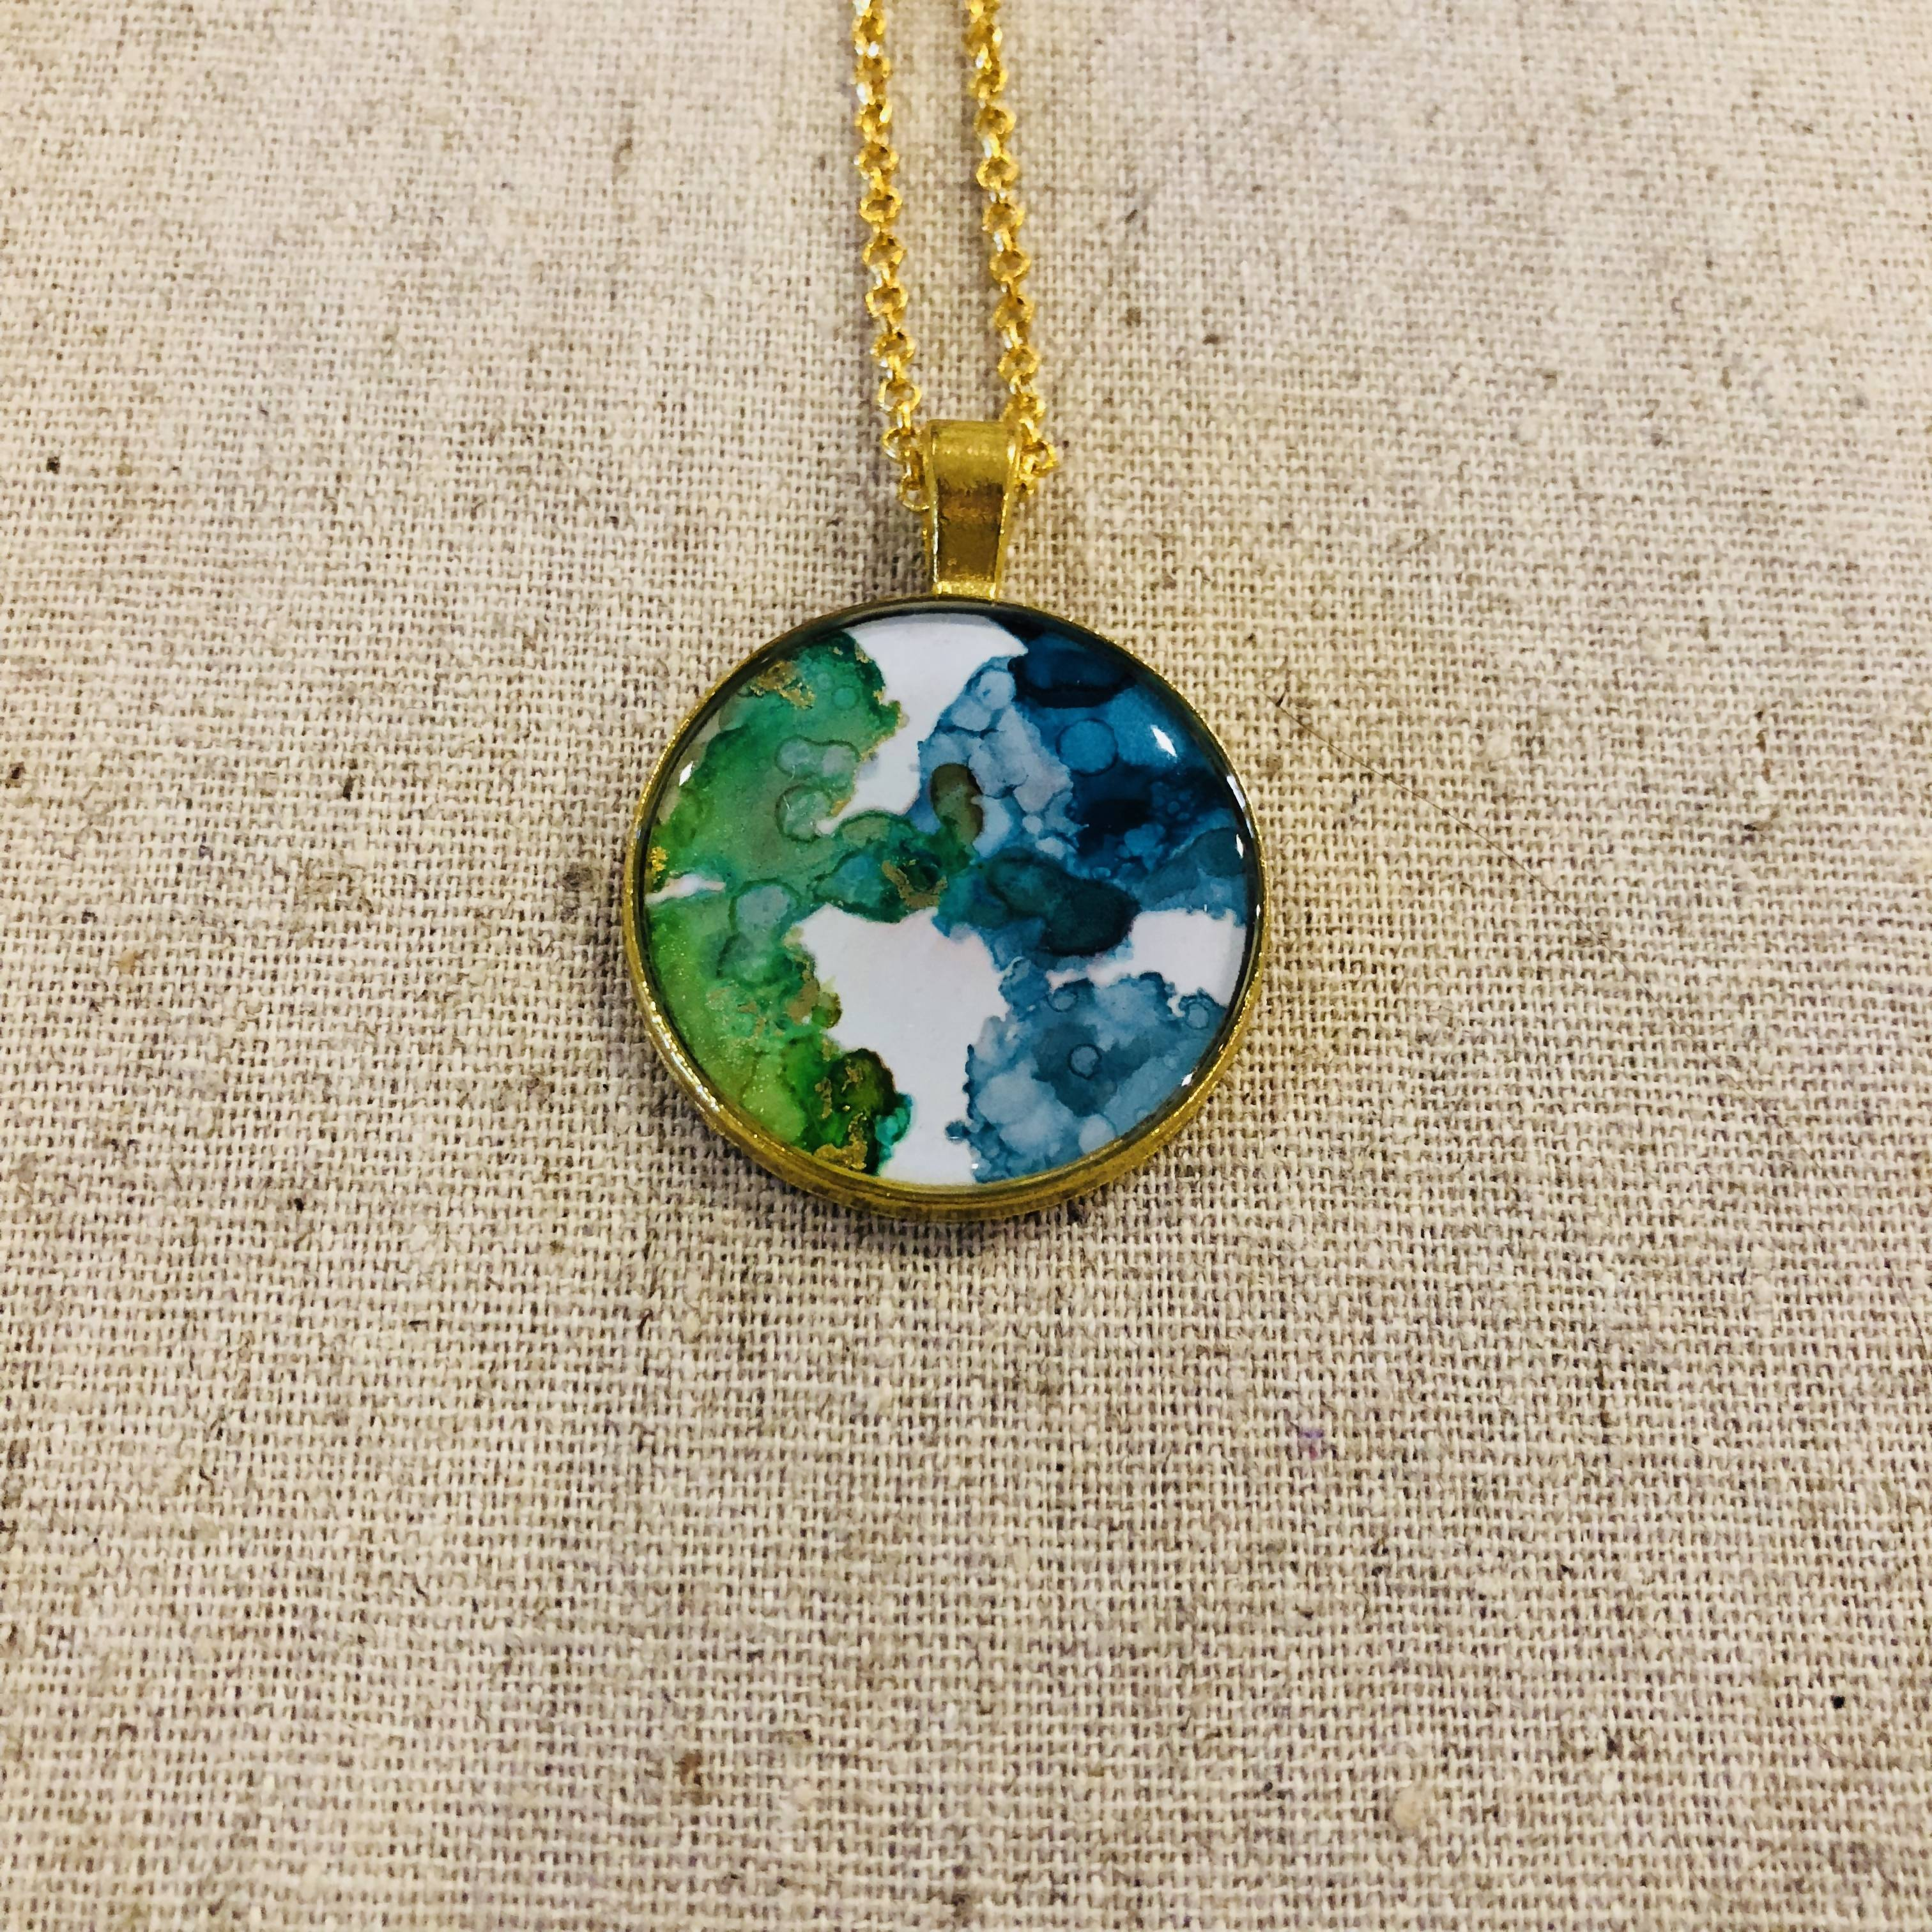 Beautiful green, blue and white watercolor pendant necklace